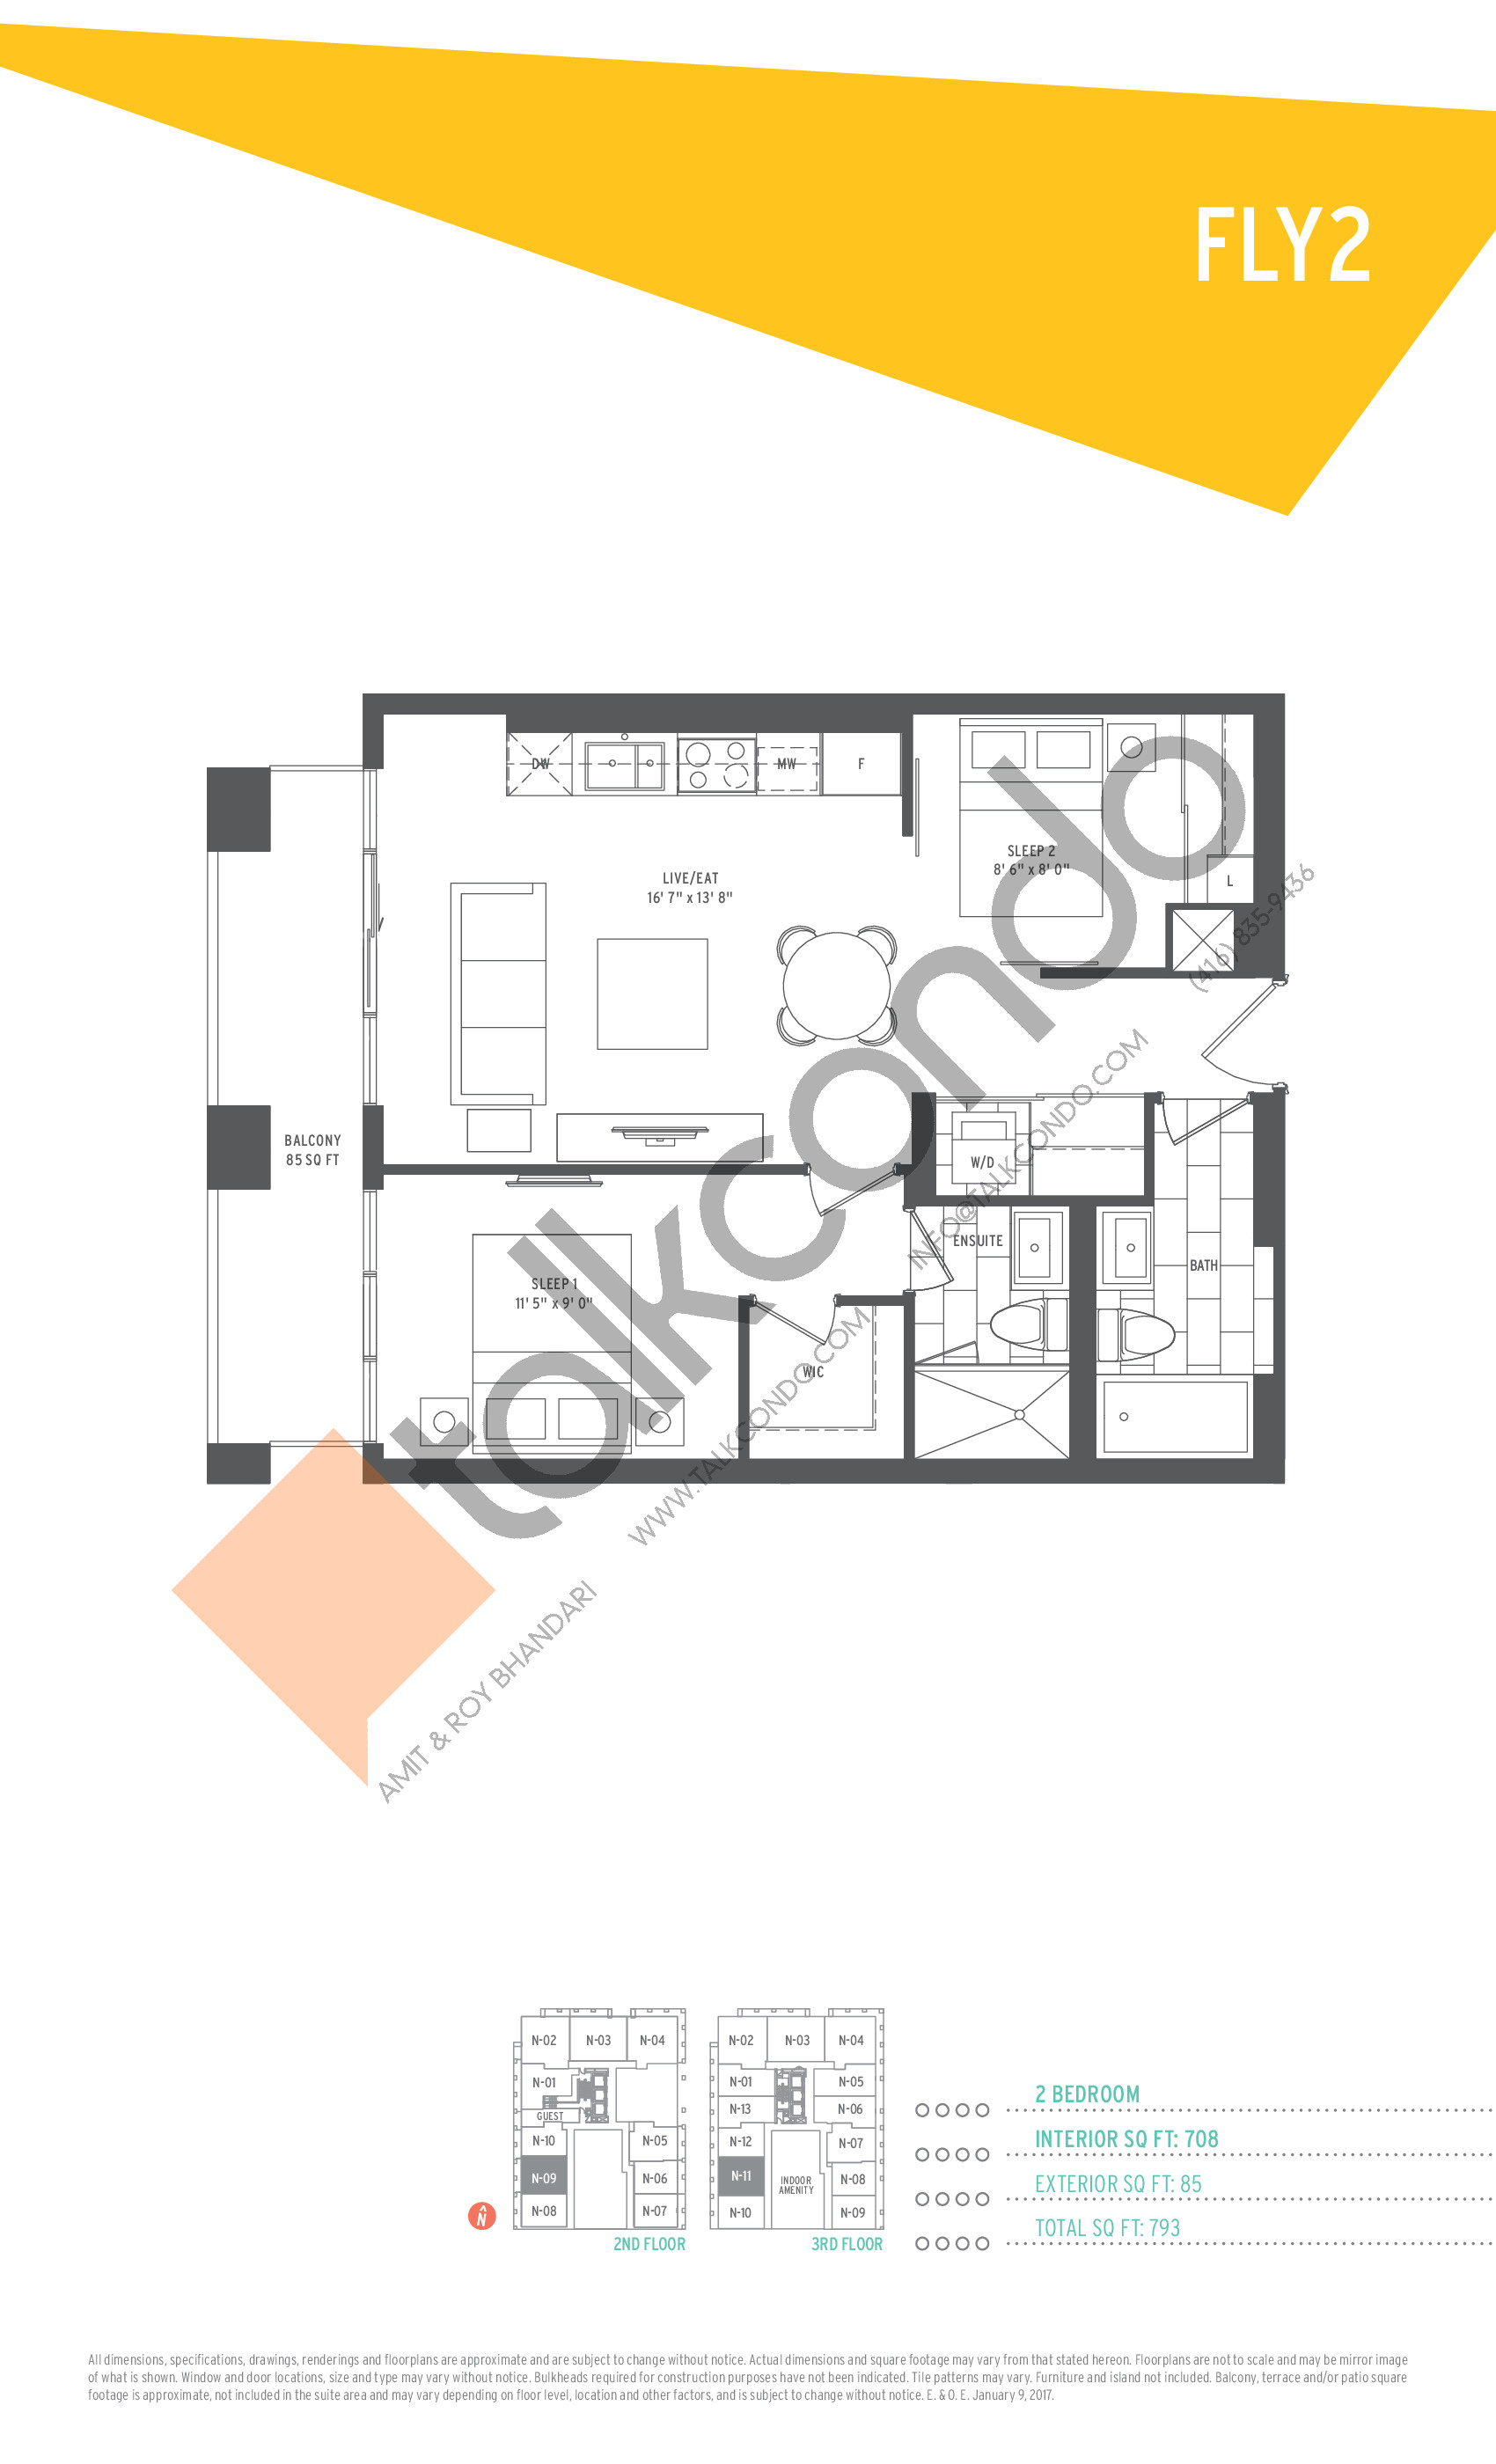 Fly2 Floor Plan at SuperSonic Condos - 708 sq.ft